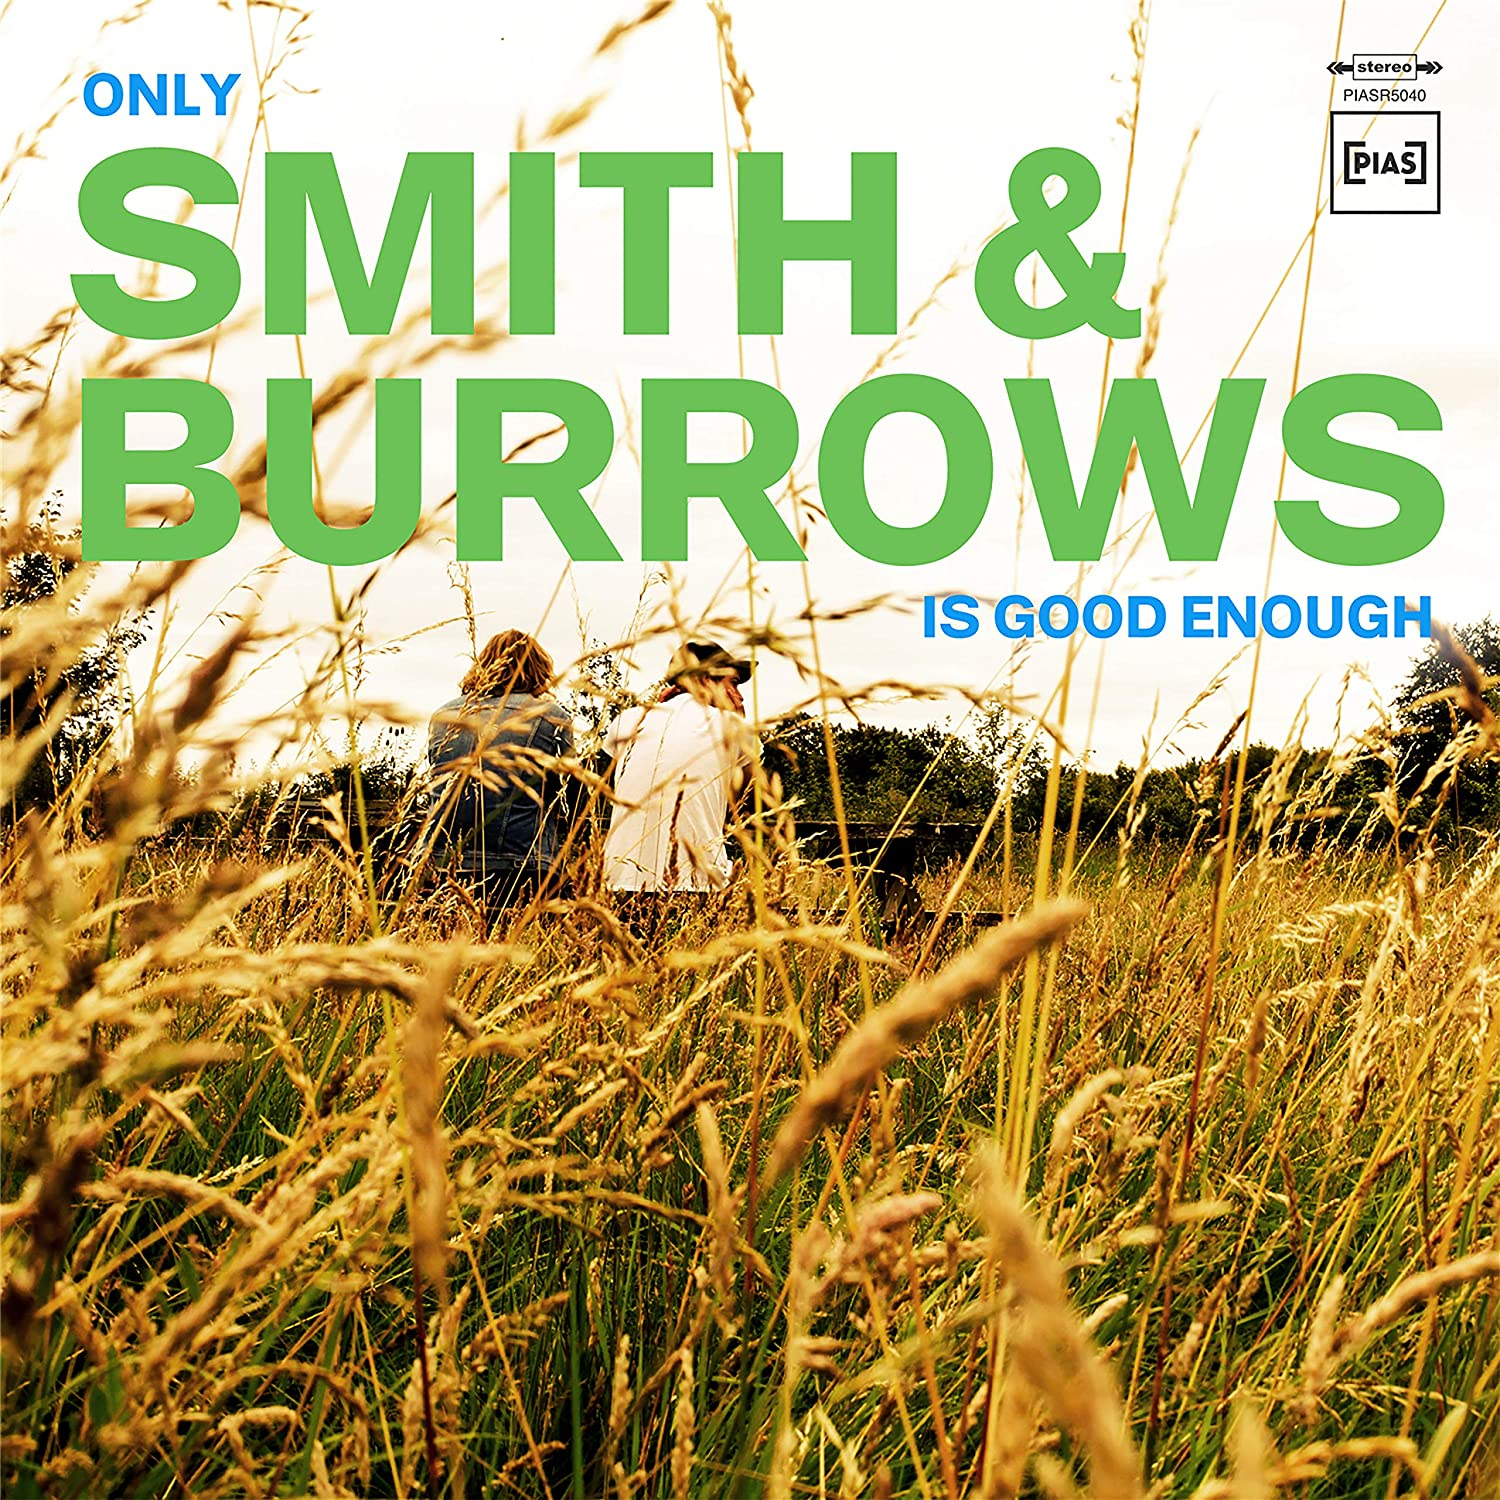 Smith and Burrows - Only Smith and Burrows Is Good Enough